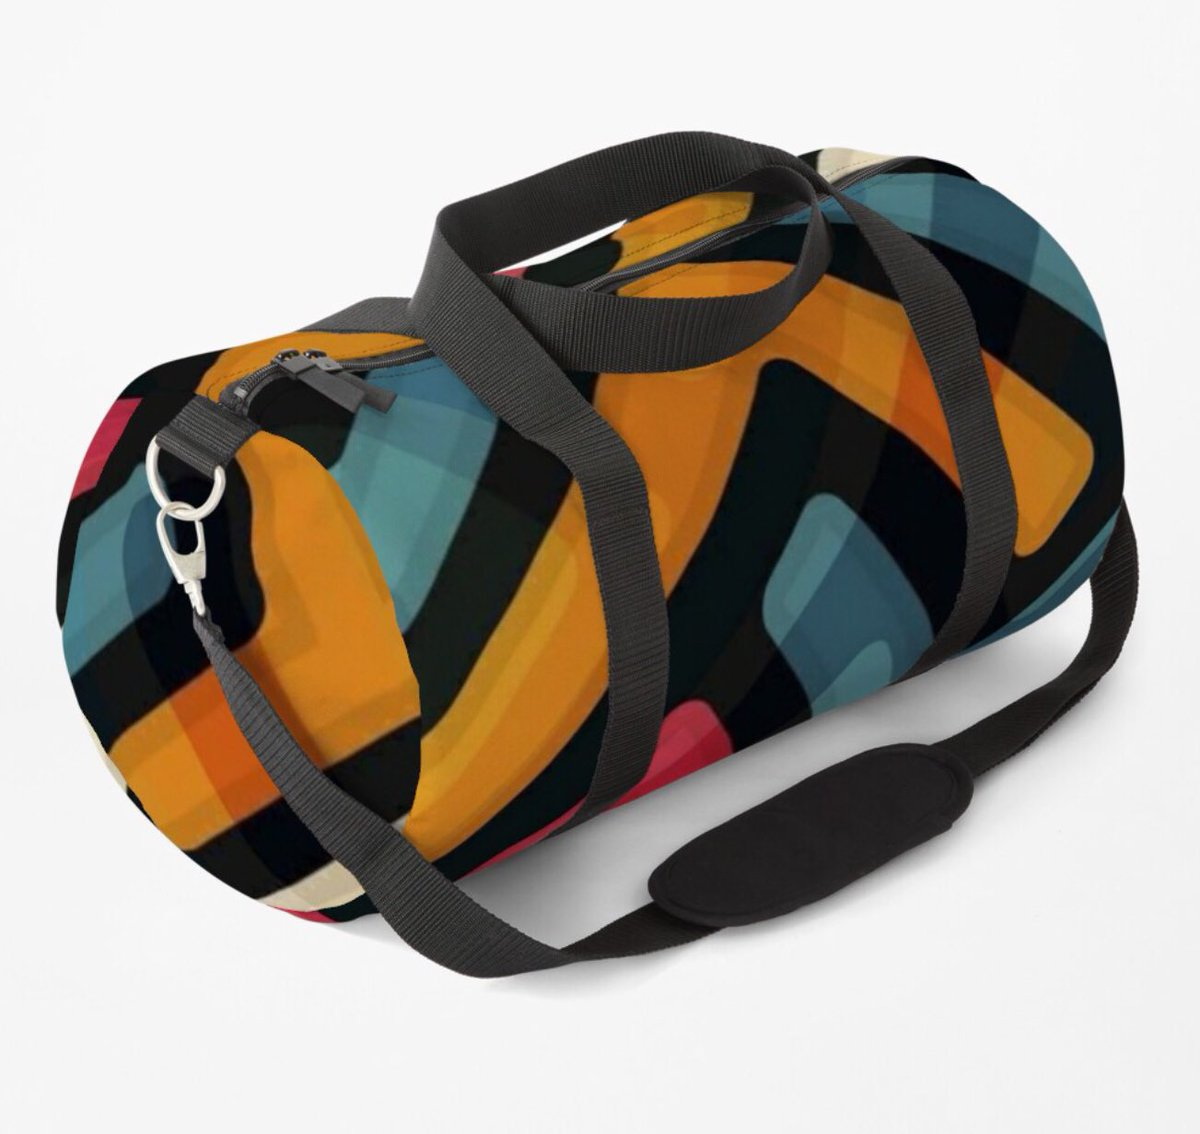 Etnic • Duffle Bag by Alex Nights #art #arte #accessories #fashion #young #style #bags #shoppingonline #dufflebags #colour #sport #sportive #gym #fashiondesign